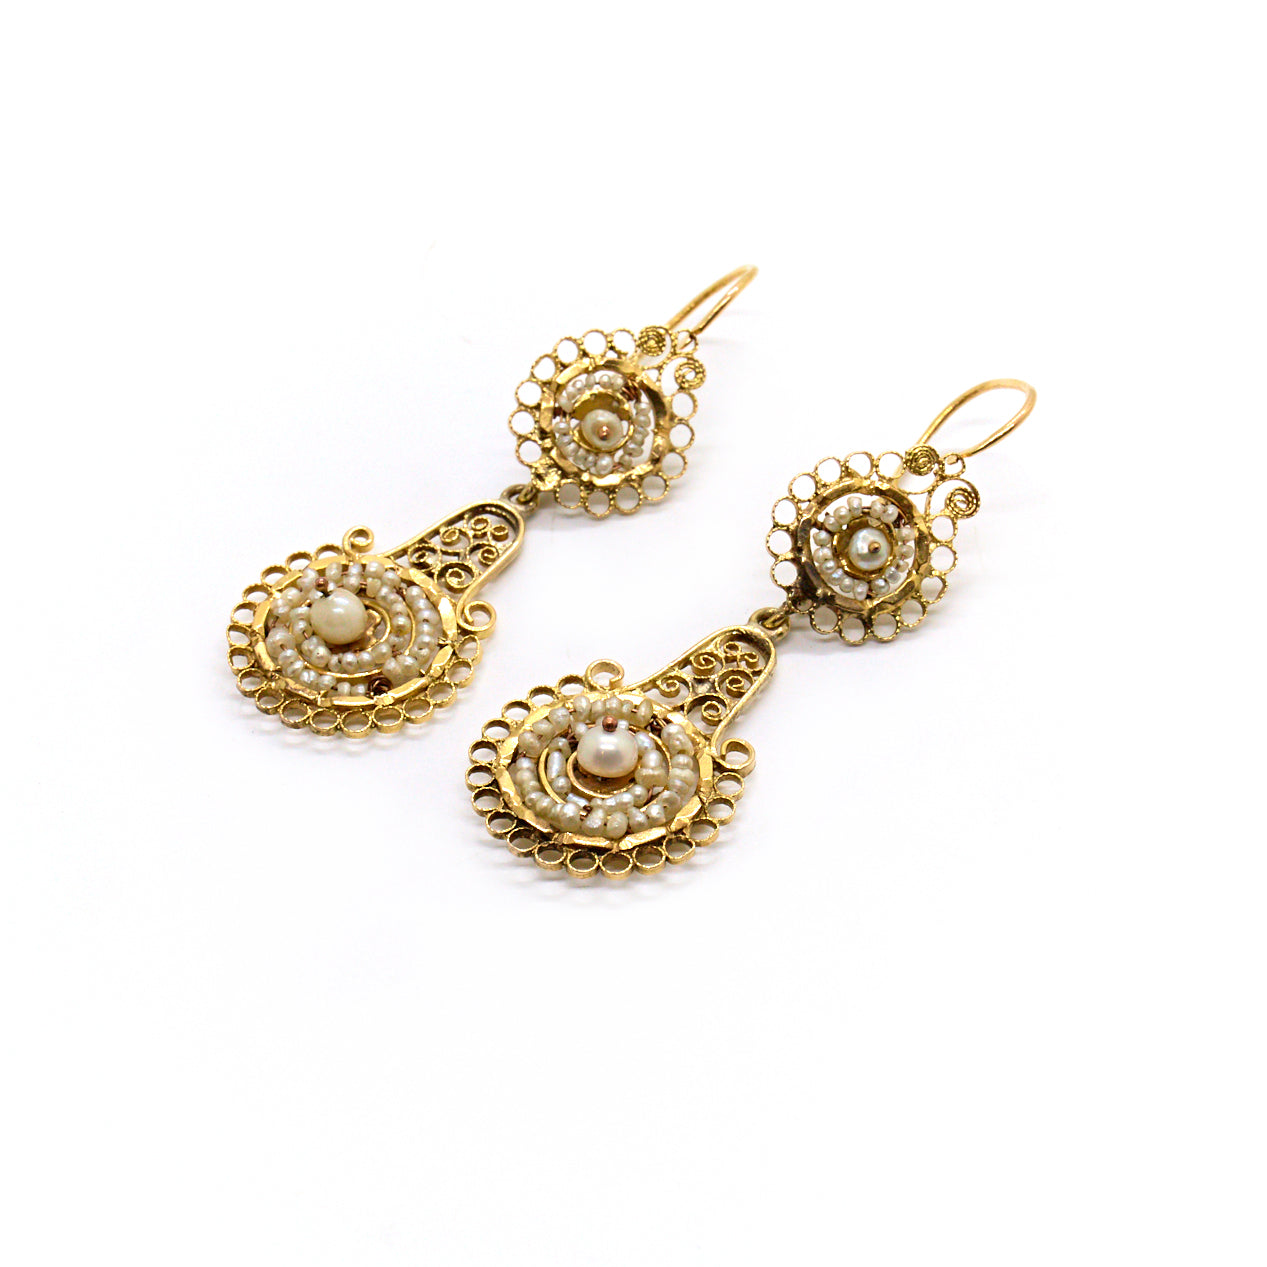 Ottilie | Vintage Victorian Pearl Earrings